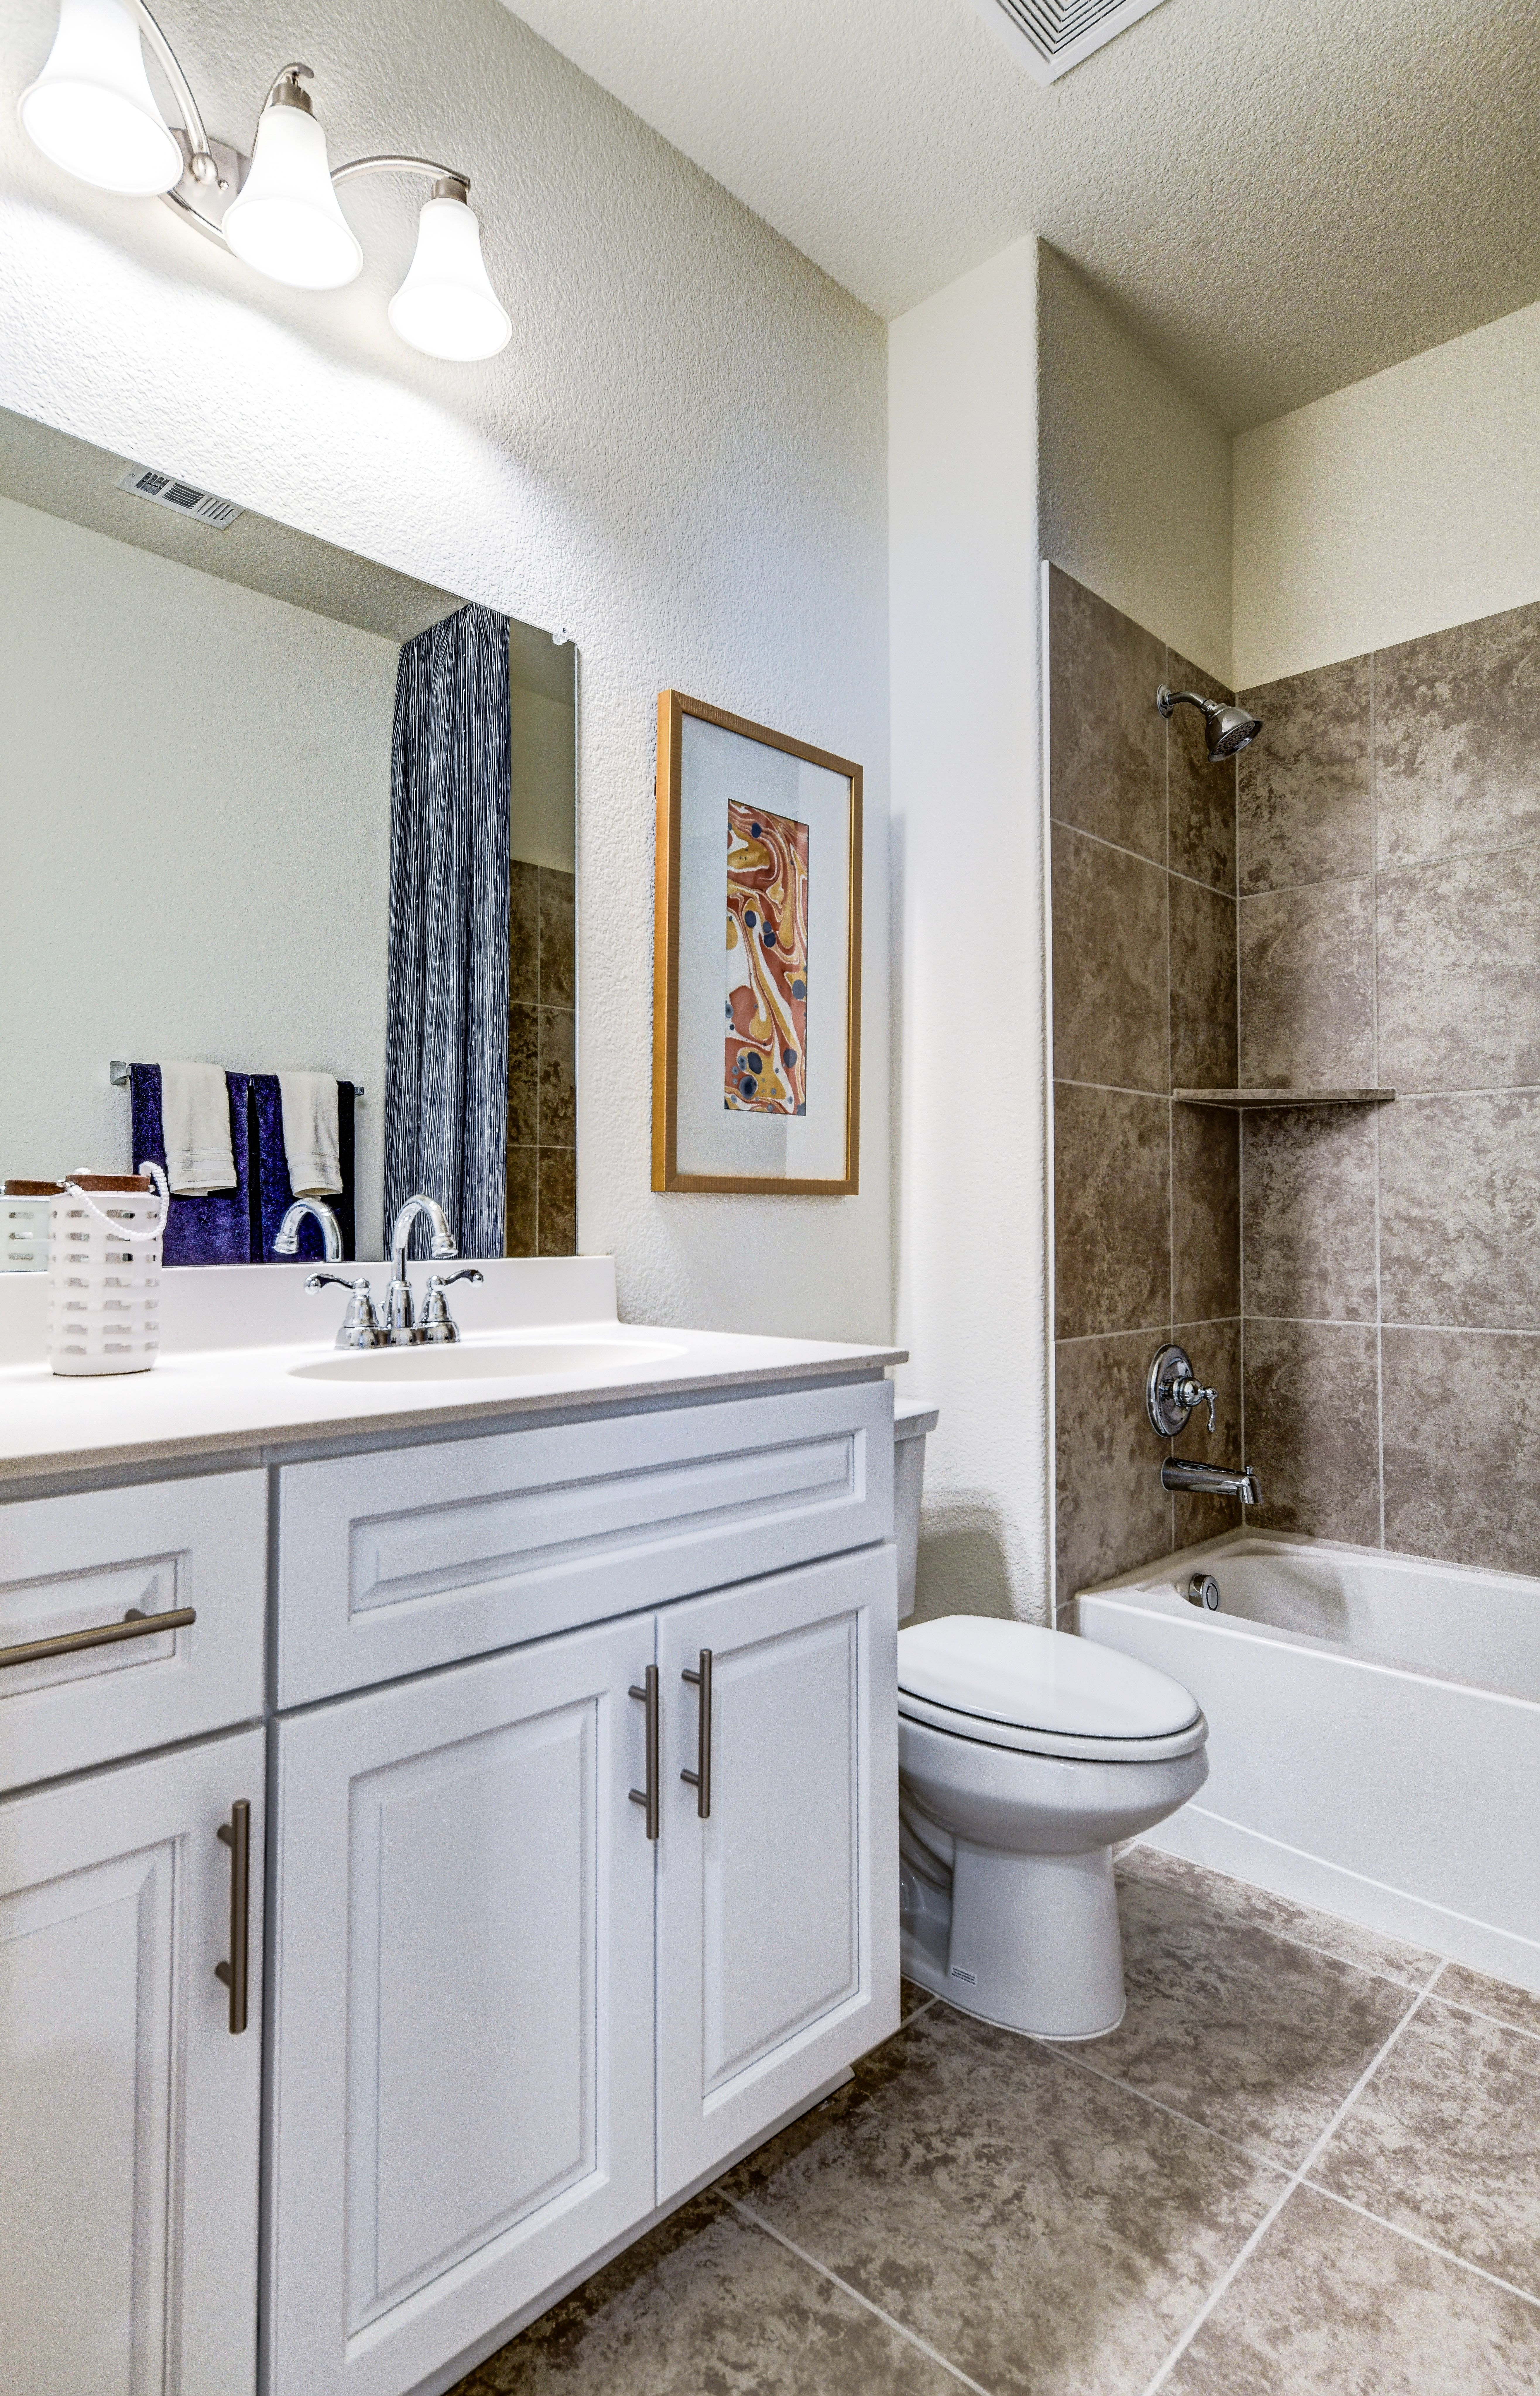 Bathroom featured in the Rockford II By K. Hovnanian® Homes in Dallas, TX